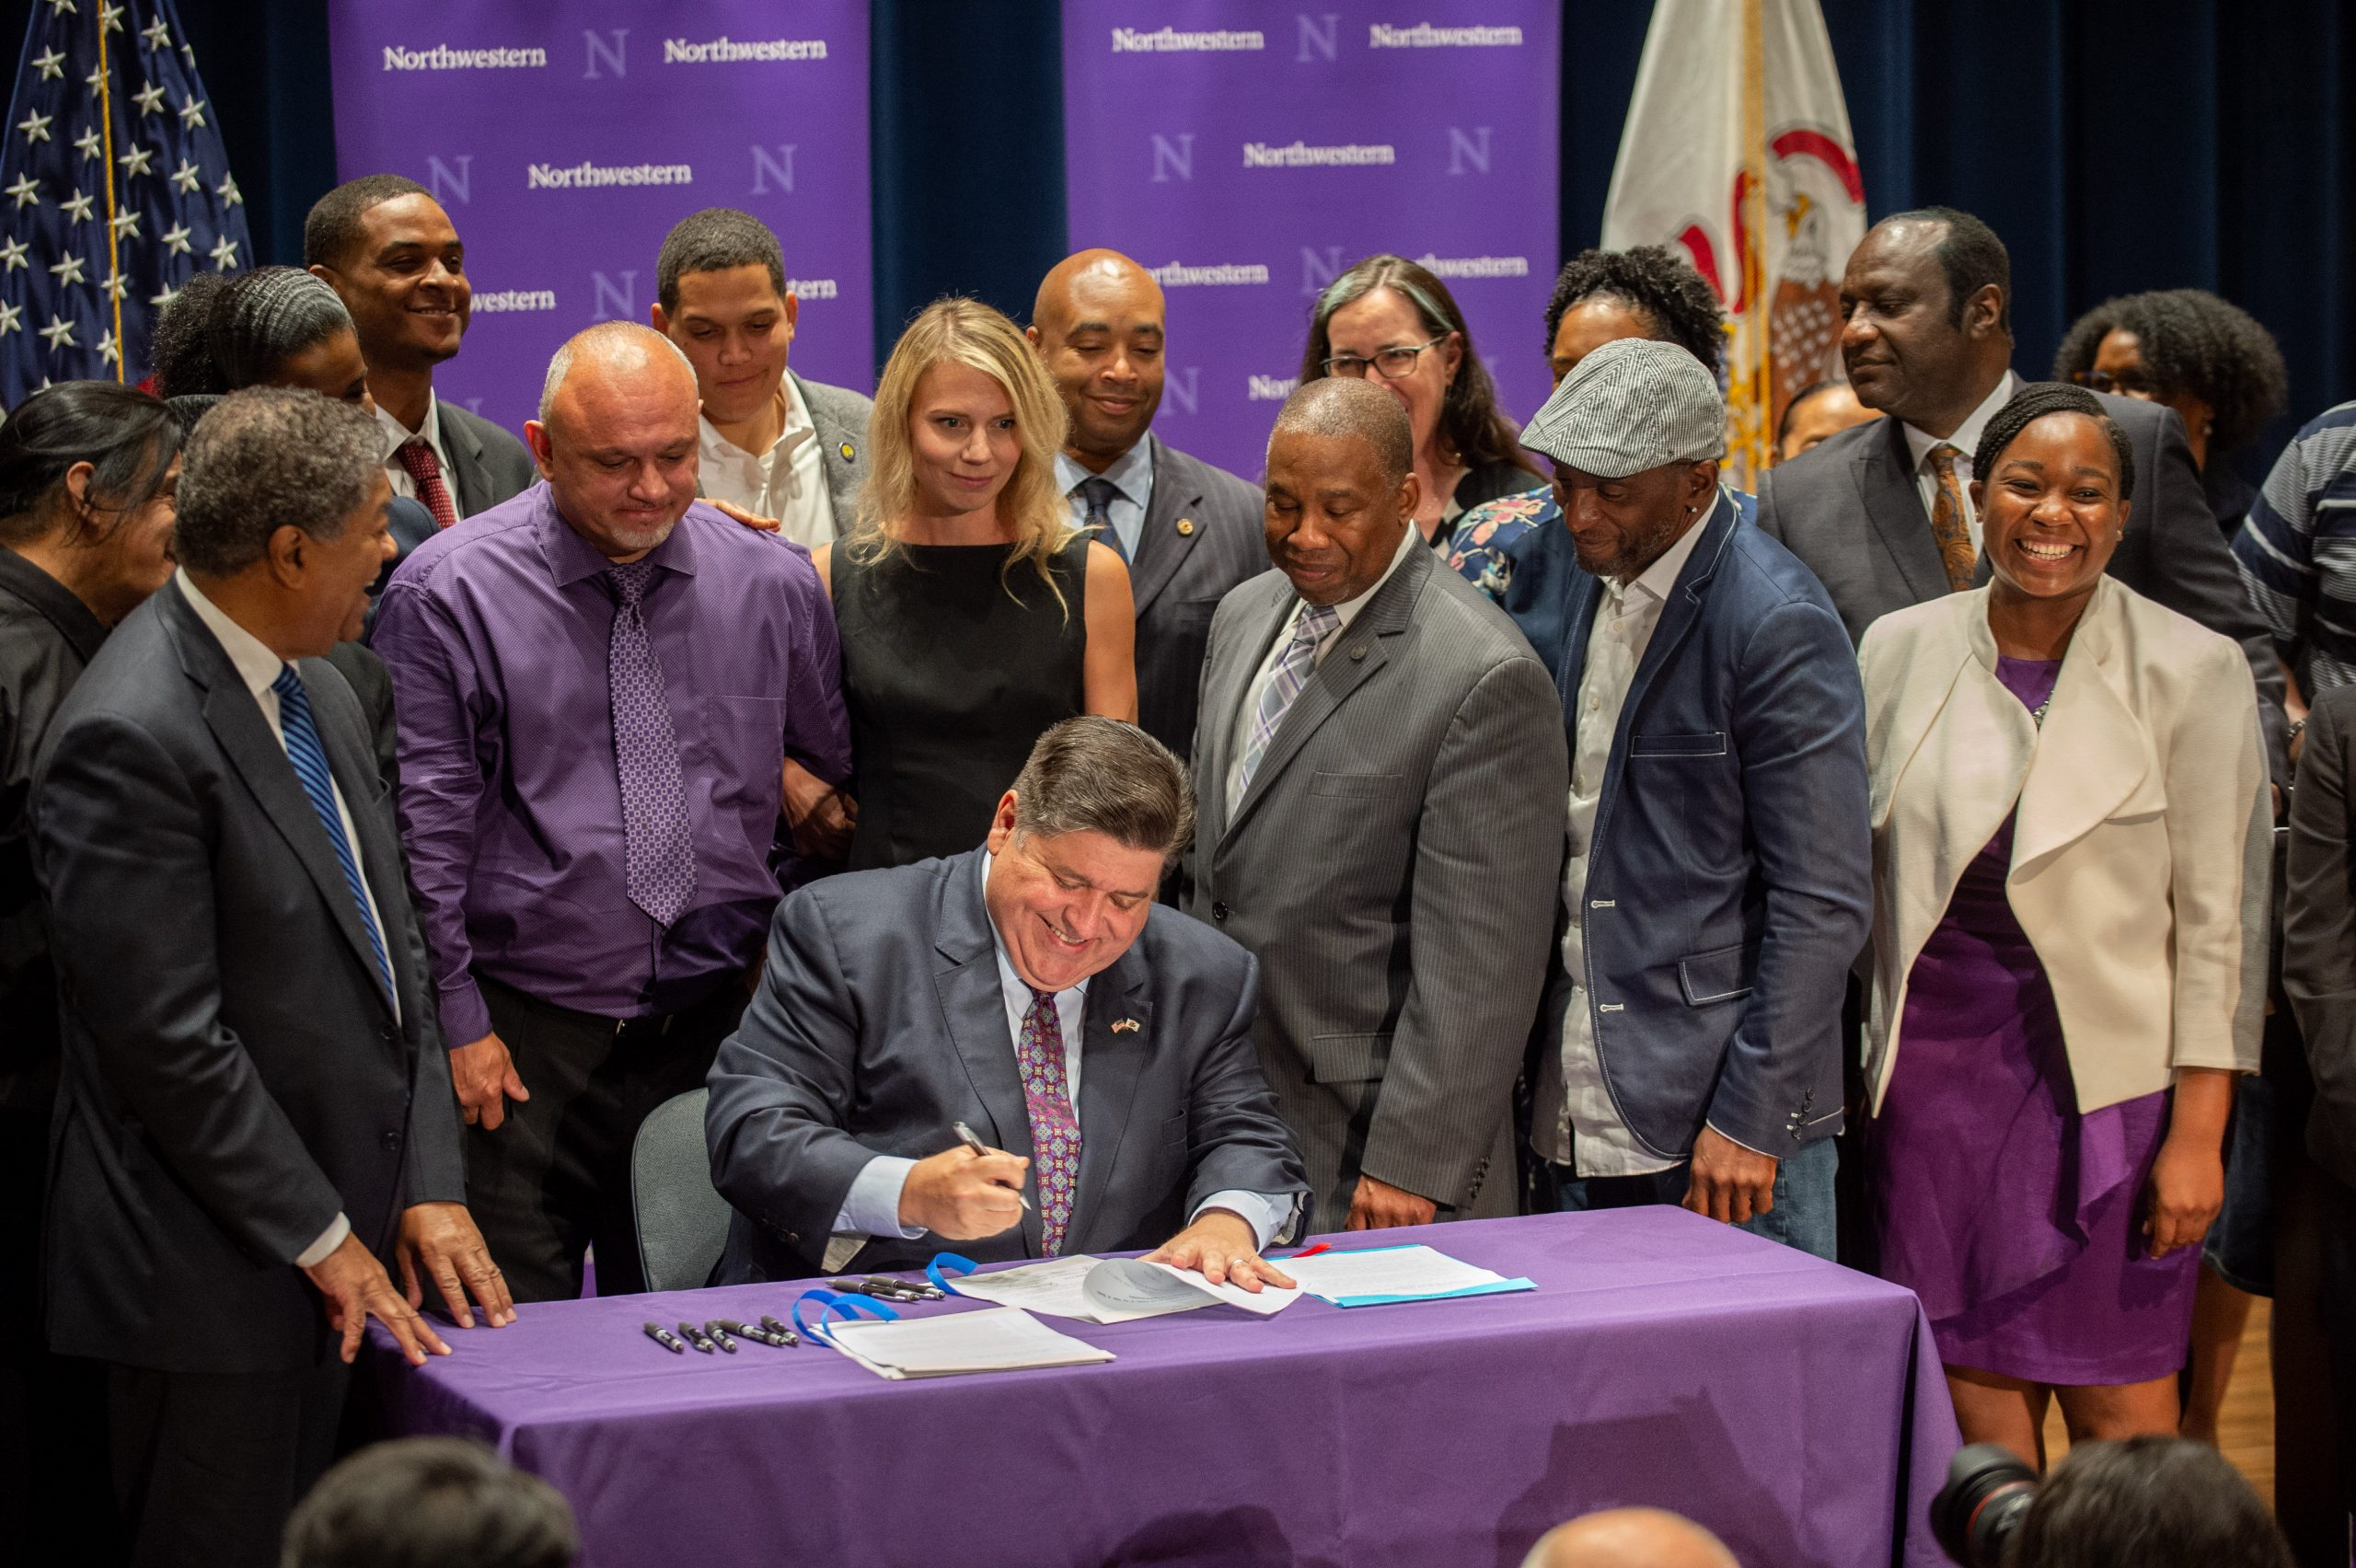 CHICAGO, IL - JULY 15: Illinois Governor J.B. Pritzker formally signed into law four new bills during a press conference of Wednesday, July 15, 2021 in the Thorne Auditorium at the Pritzker School of Law on the Chicago campus of Northwestern University in Chicago, Illinois. The new laws ban the use of deceptive practices to extract confessions during the interrogation of minors.  (Photo credit: Randy Belice for Northwestern University)